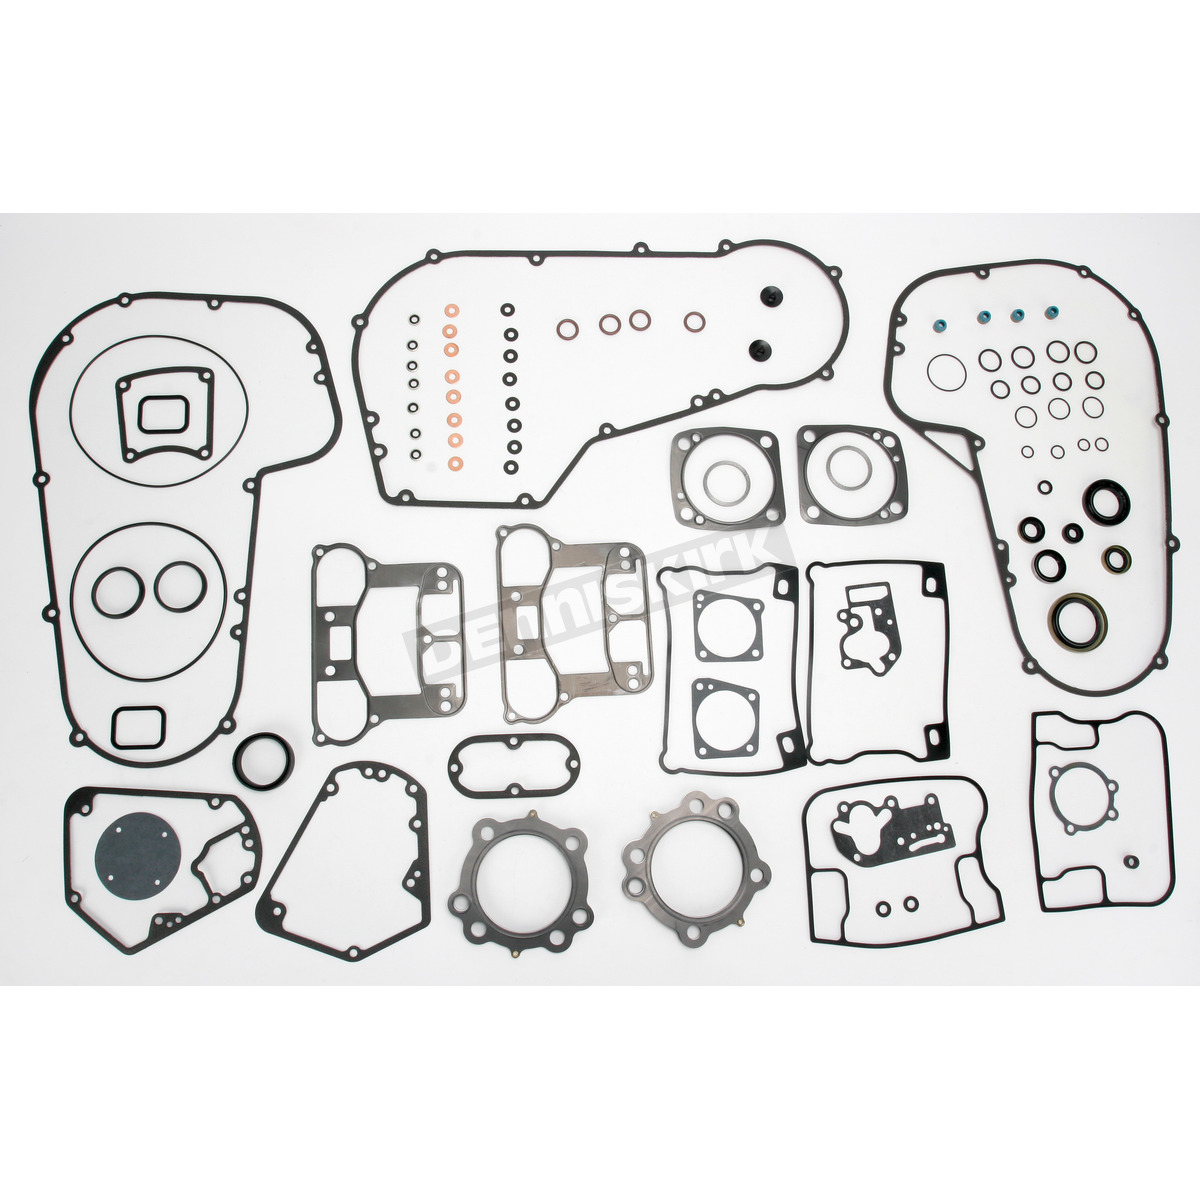 Extreme Sealing Technology (EST) Complete Gasket Kit w/ 030 in  Head Gasket  - C9846F